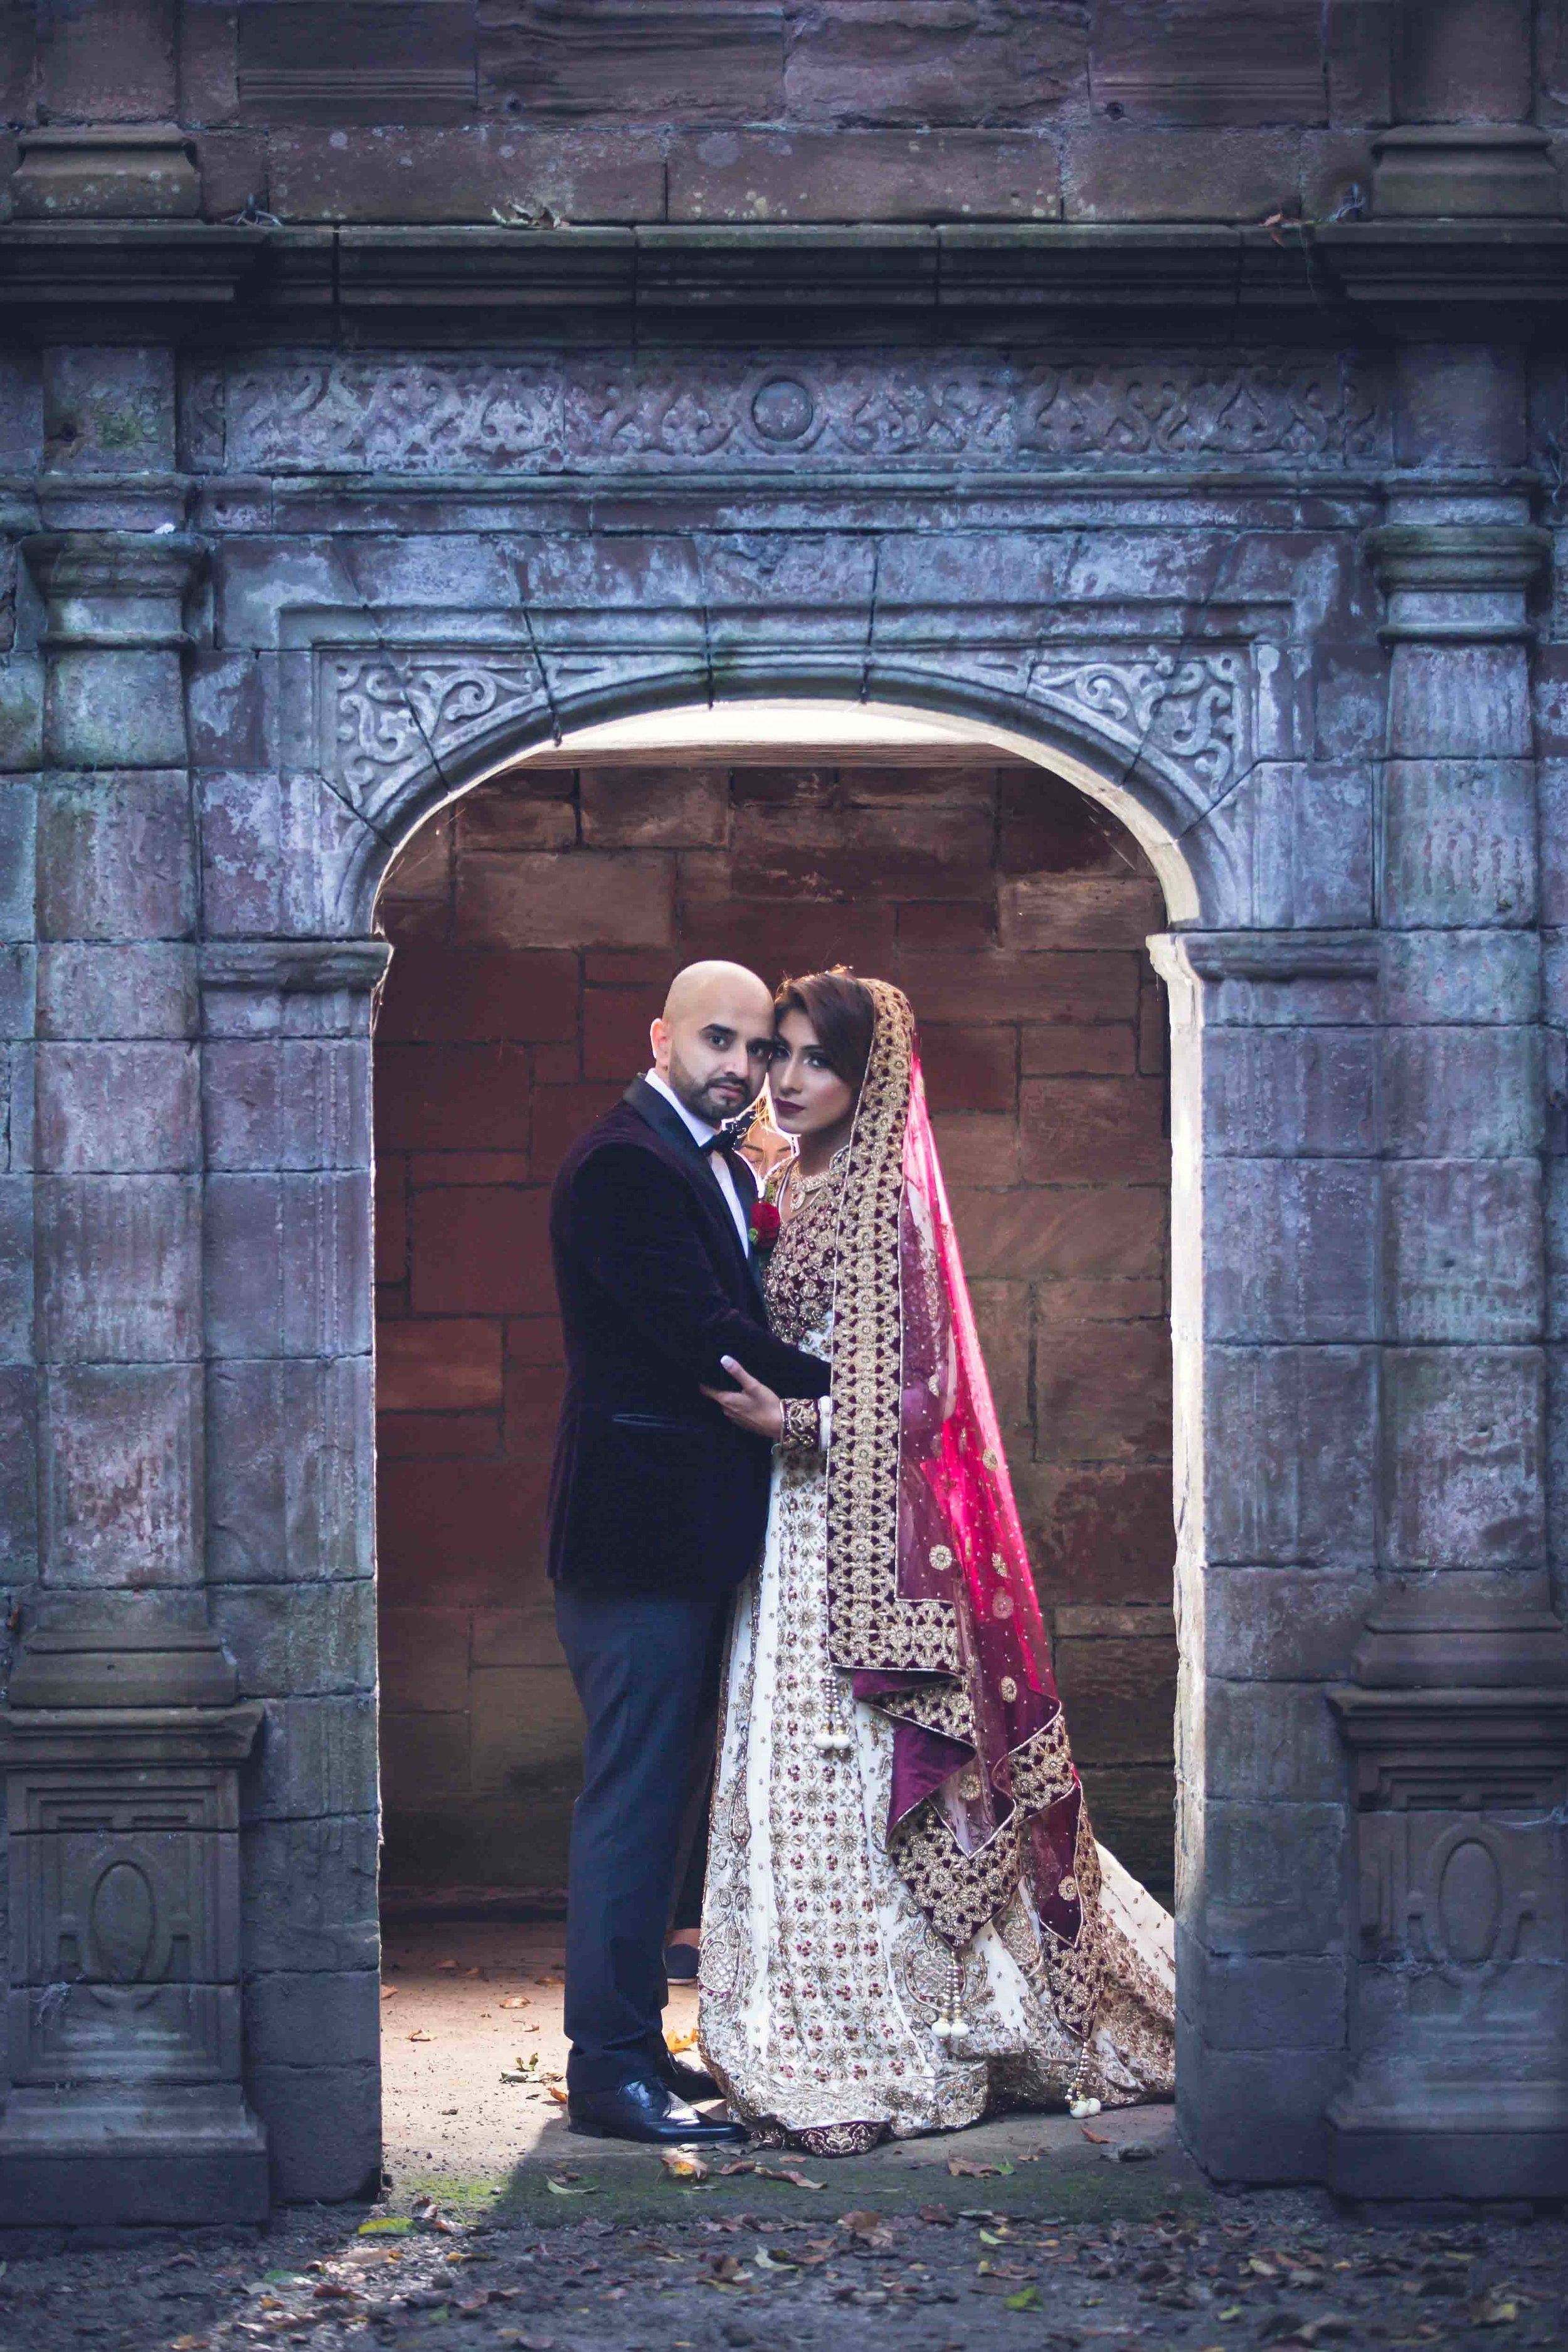 Asian Wedding Photographer Opu Sultan Photography Lyme Park Scotland Edinburgh Glasgow London Manchester Liverpool Birmingham Wedding Photos prewed shoot Azman & Saira Blog-95.jpg